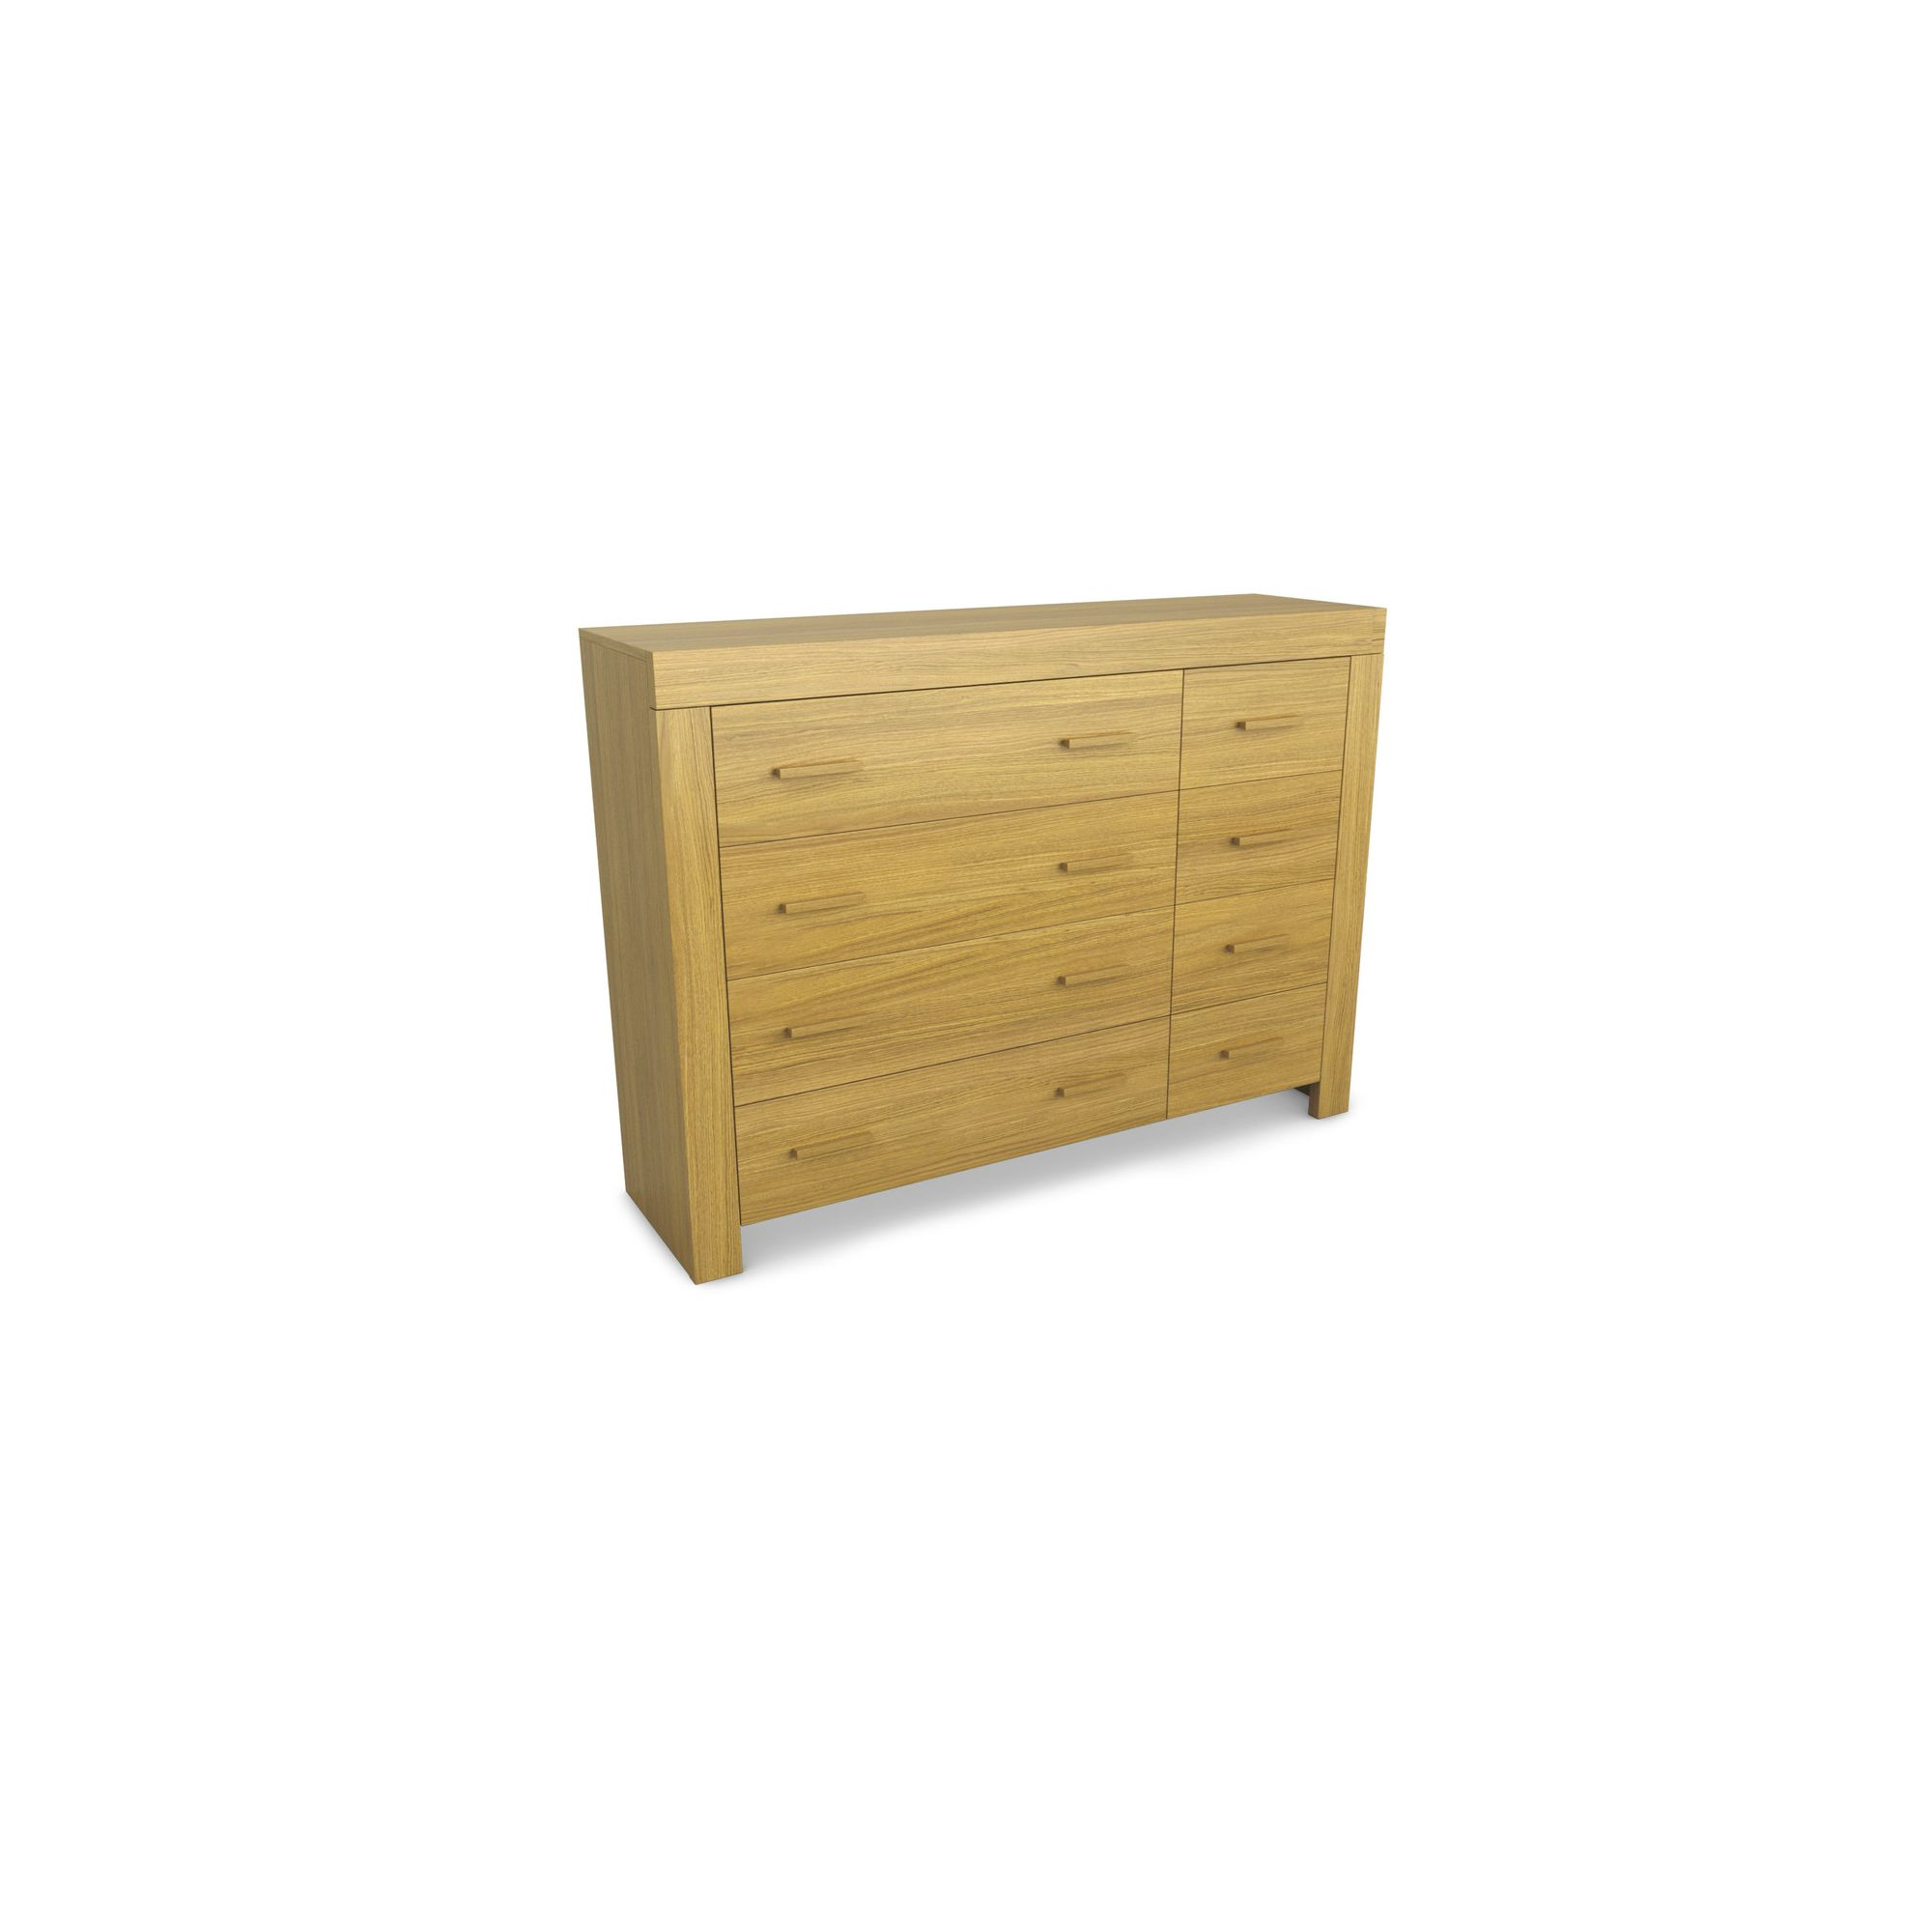 Urbane Designs Jive 4 Over 4 Drawer Chest at Tesco Direct